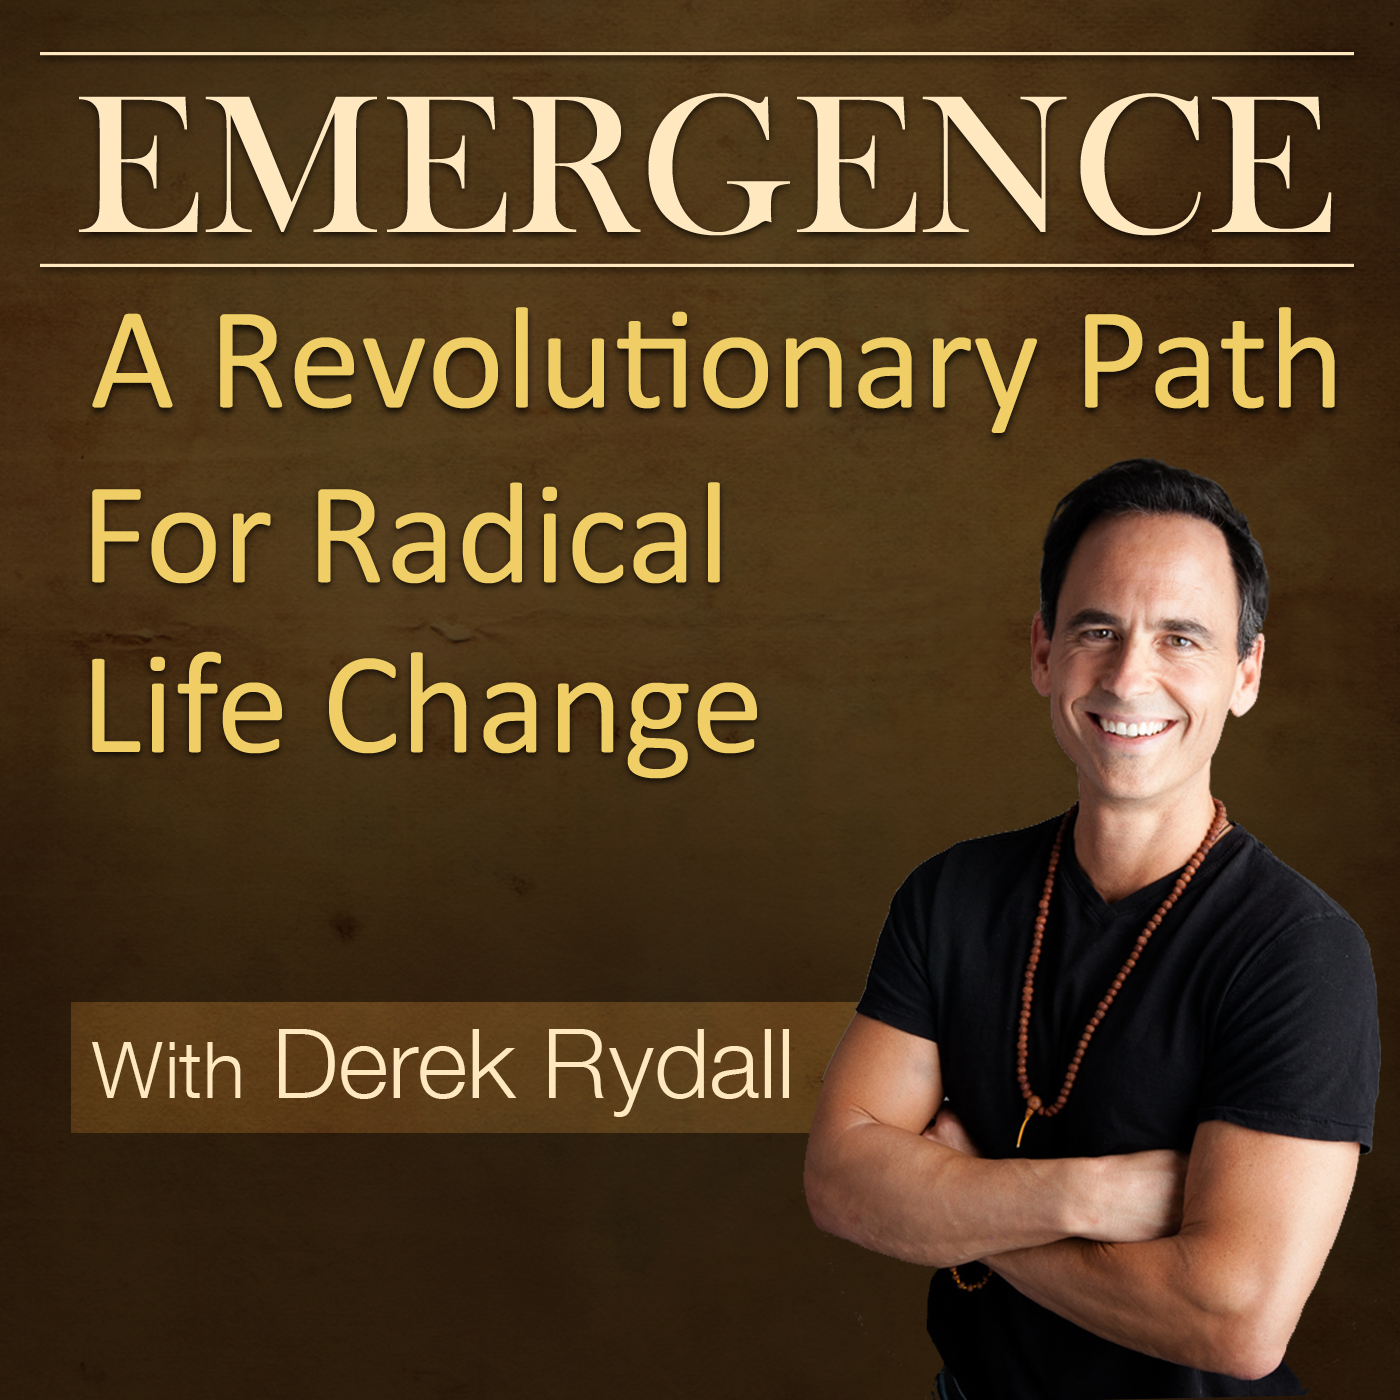 Emergence with Derek Rydall - A Revolutionary Path for Radical Life Change